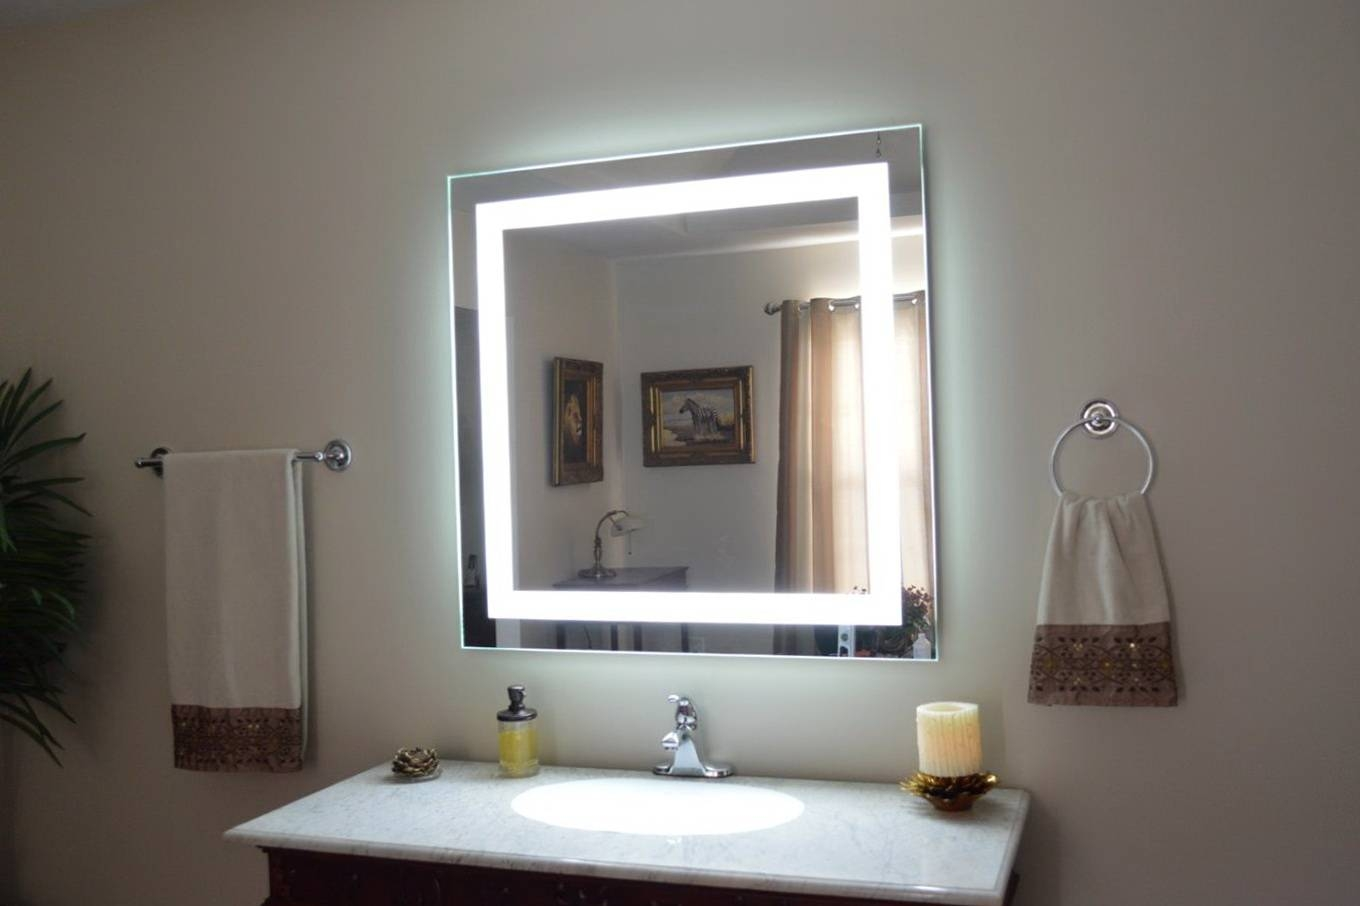 Wall Lights: Outstanding Bathroom Mirror With Lights 2017 Ideas intended for Wall Light Mirrors (Image 14 of 15)